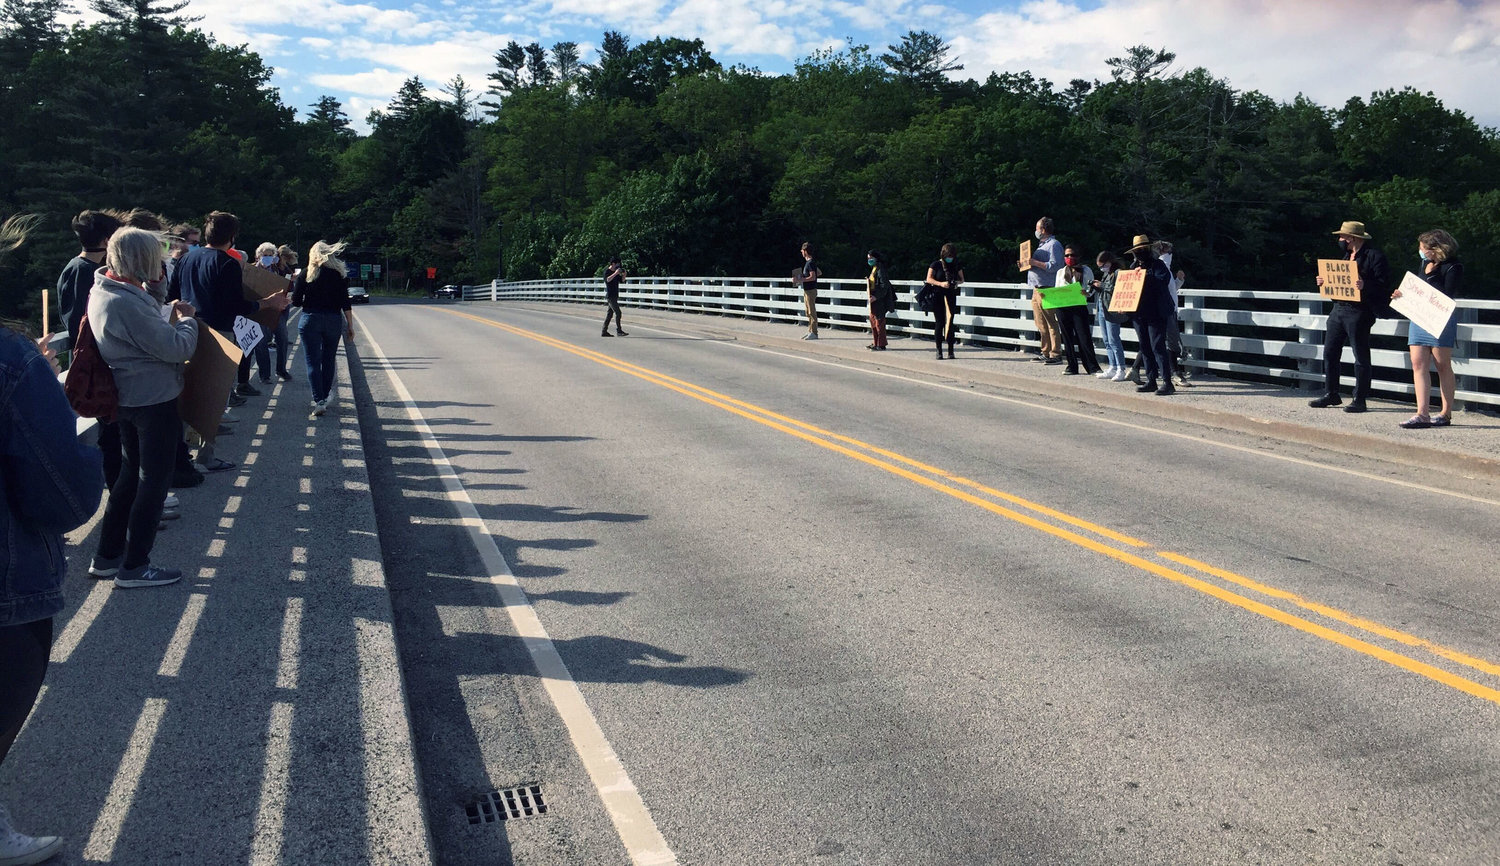 Over 50 people gathered on the Narrowsburg bridge at 5 pm to demonstrate concern and solidarity for people of color who experience oppression in their daily lives.